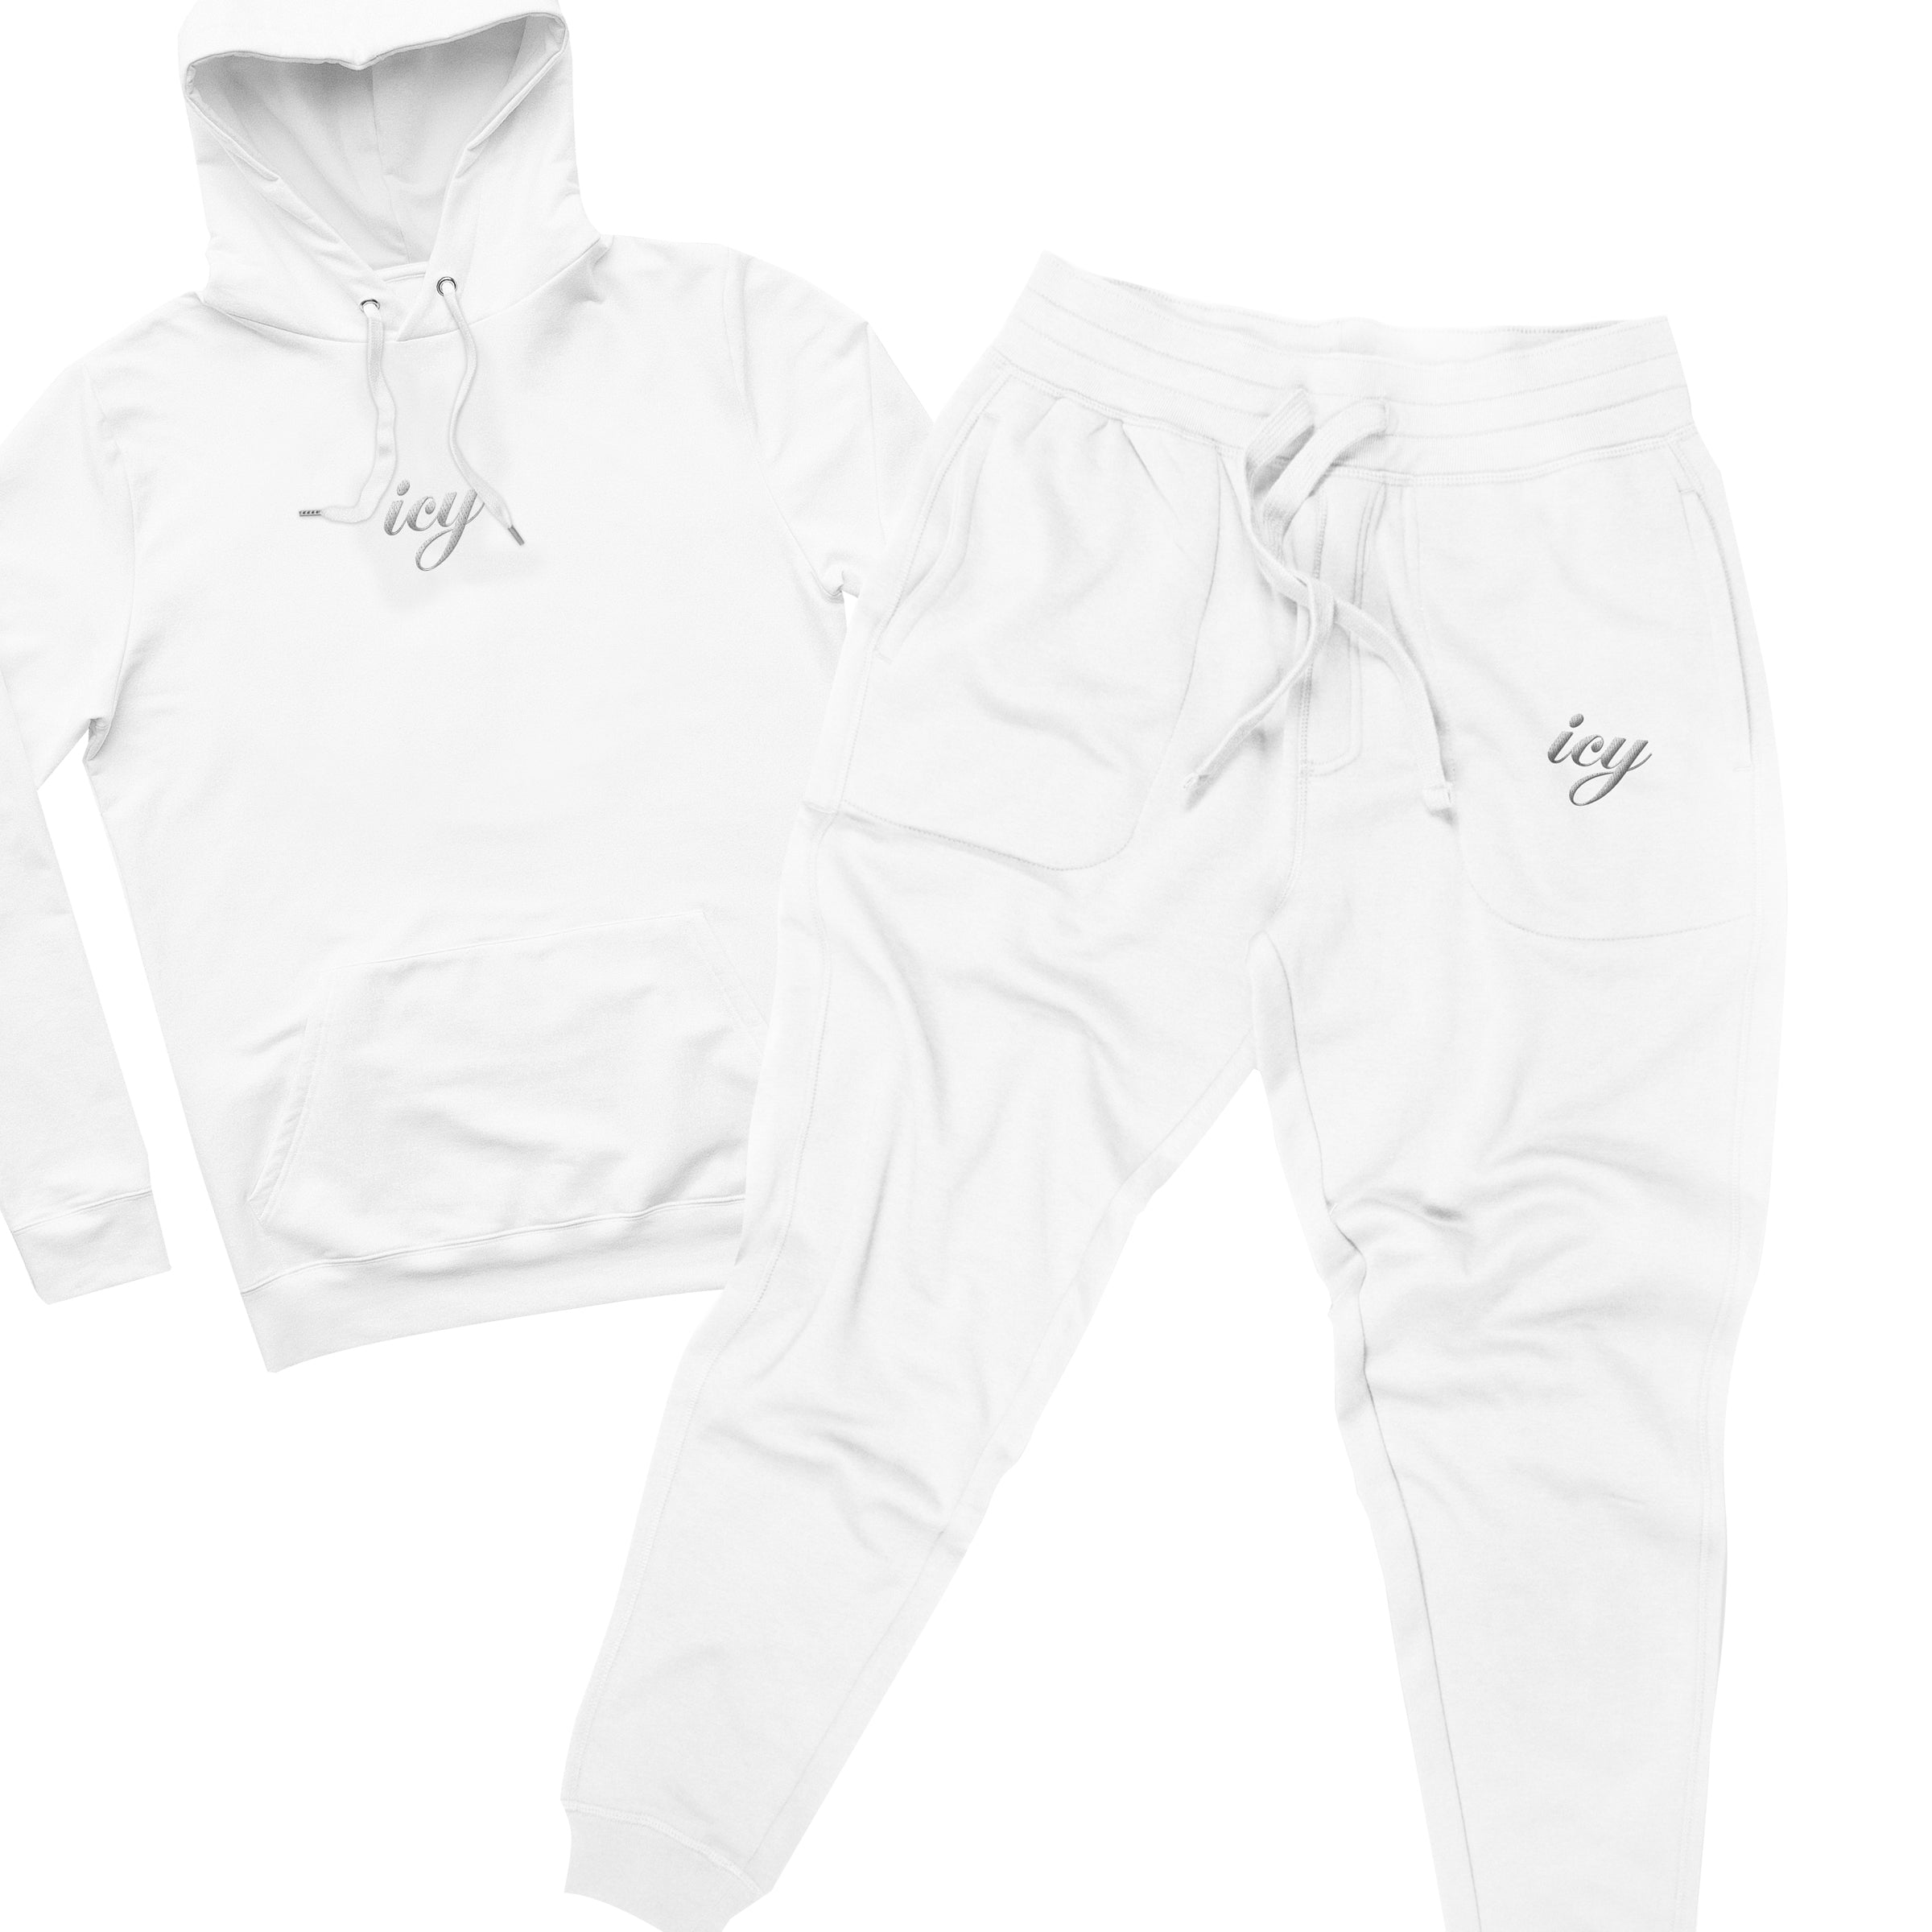 ICY Embroidered Sweatsuit